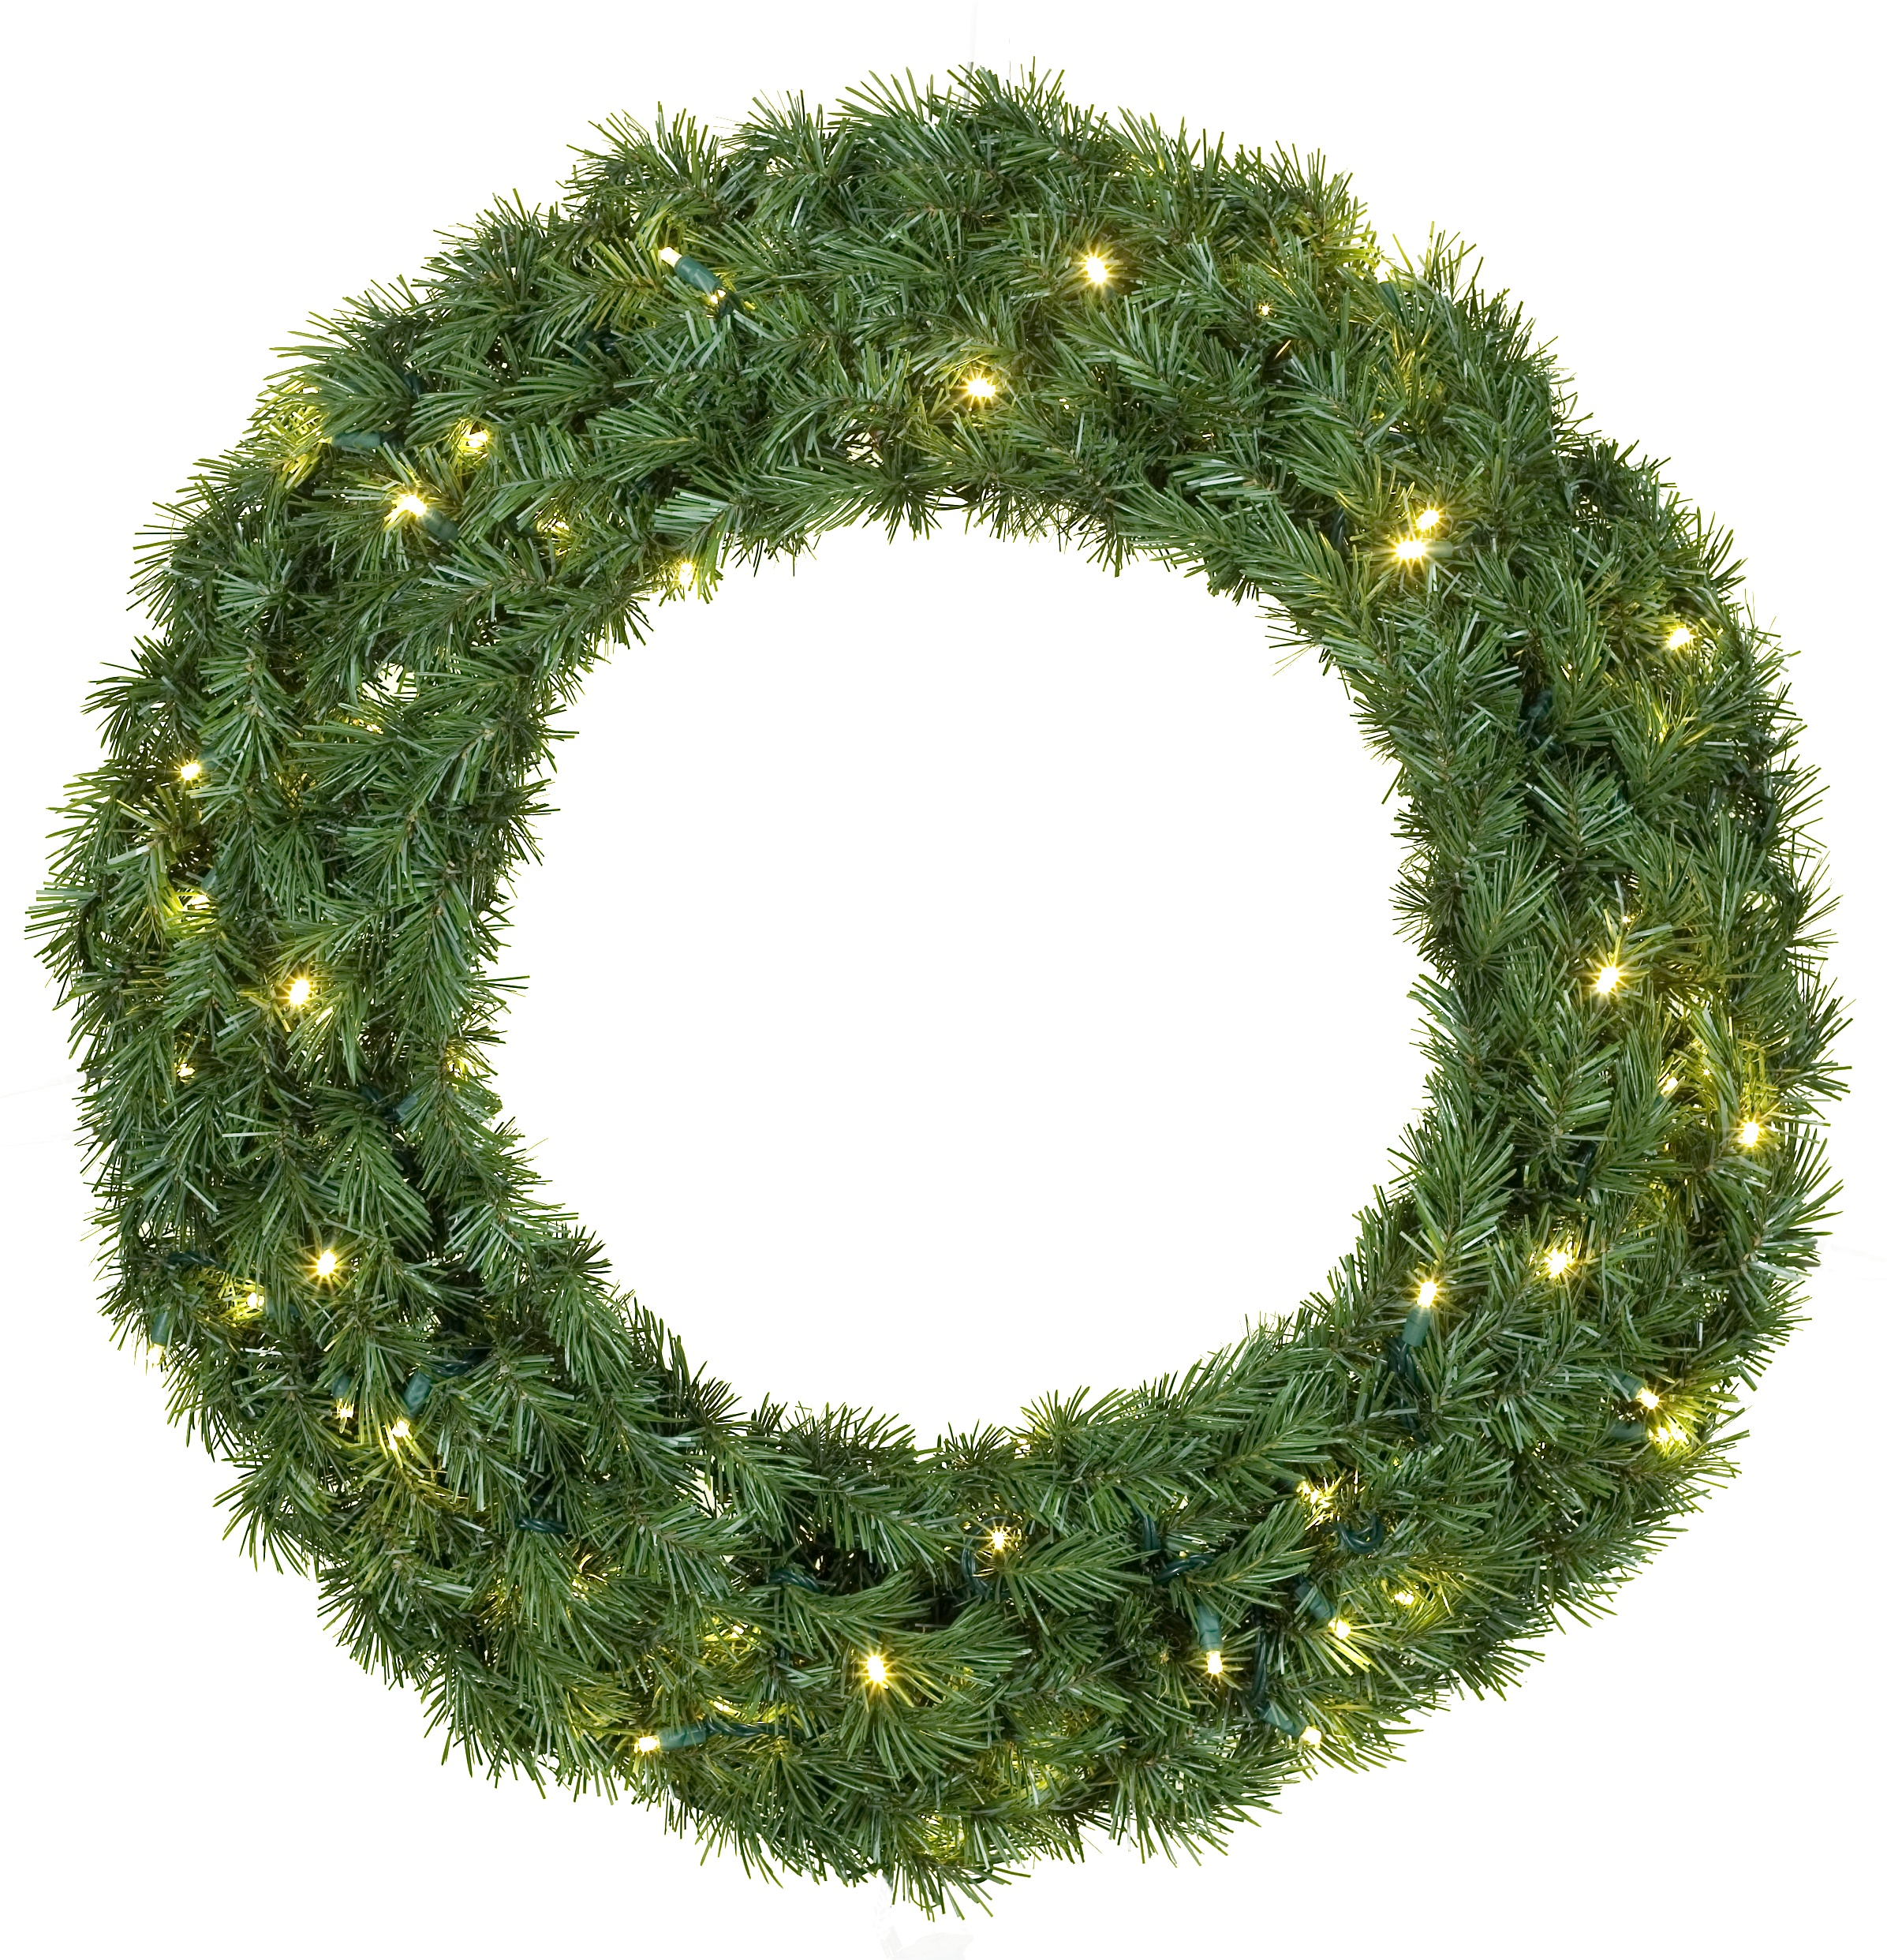 Prelit Balsam Wreath